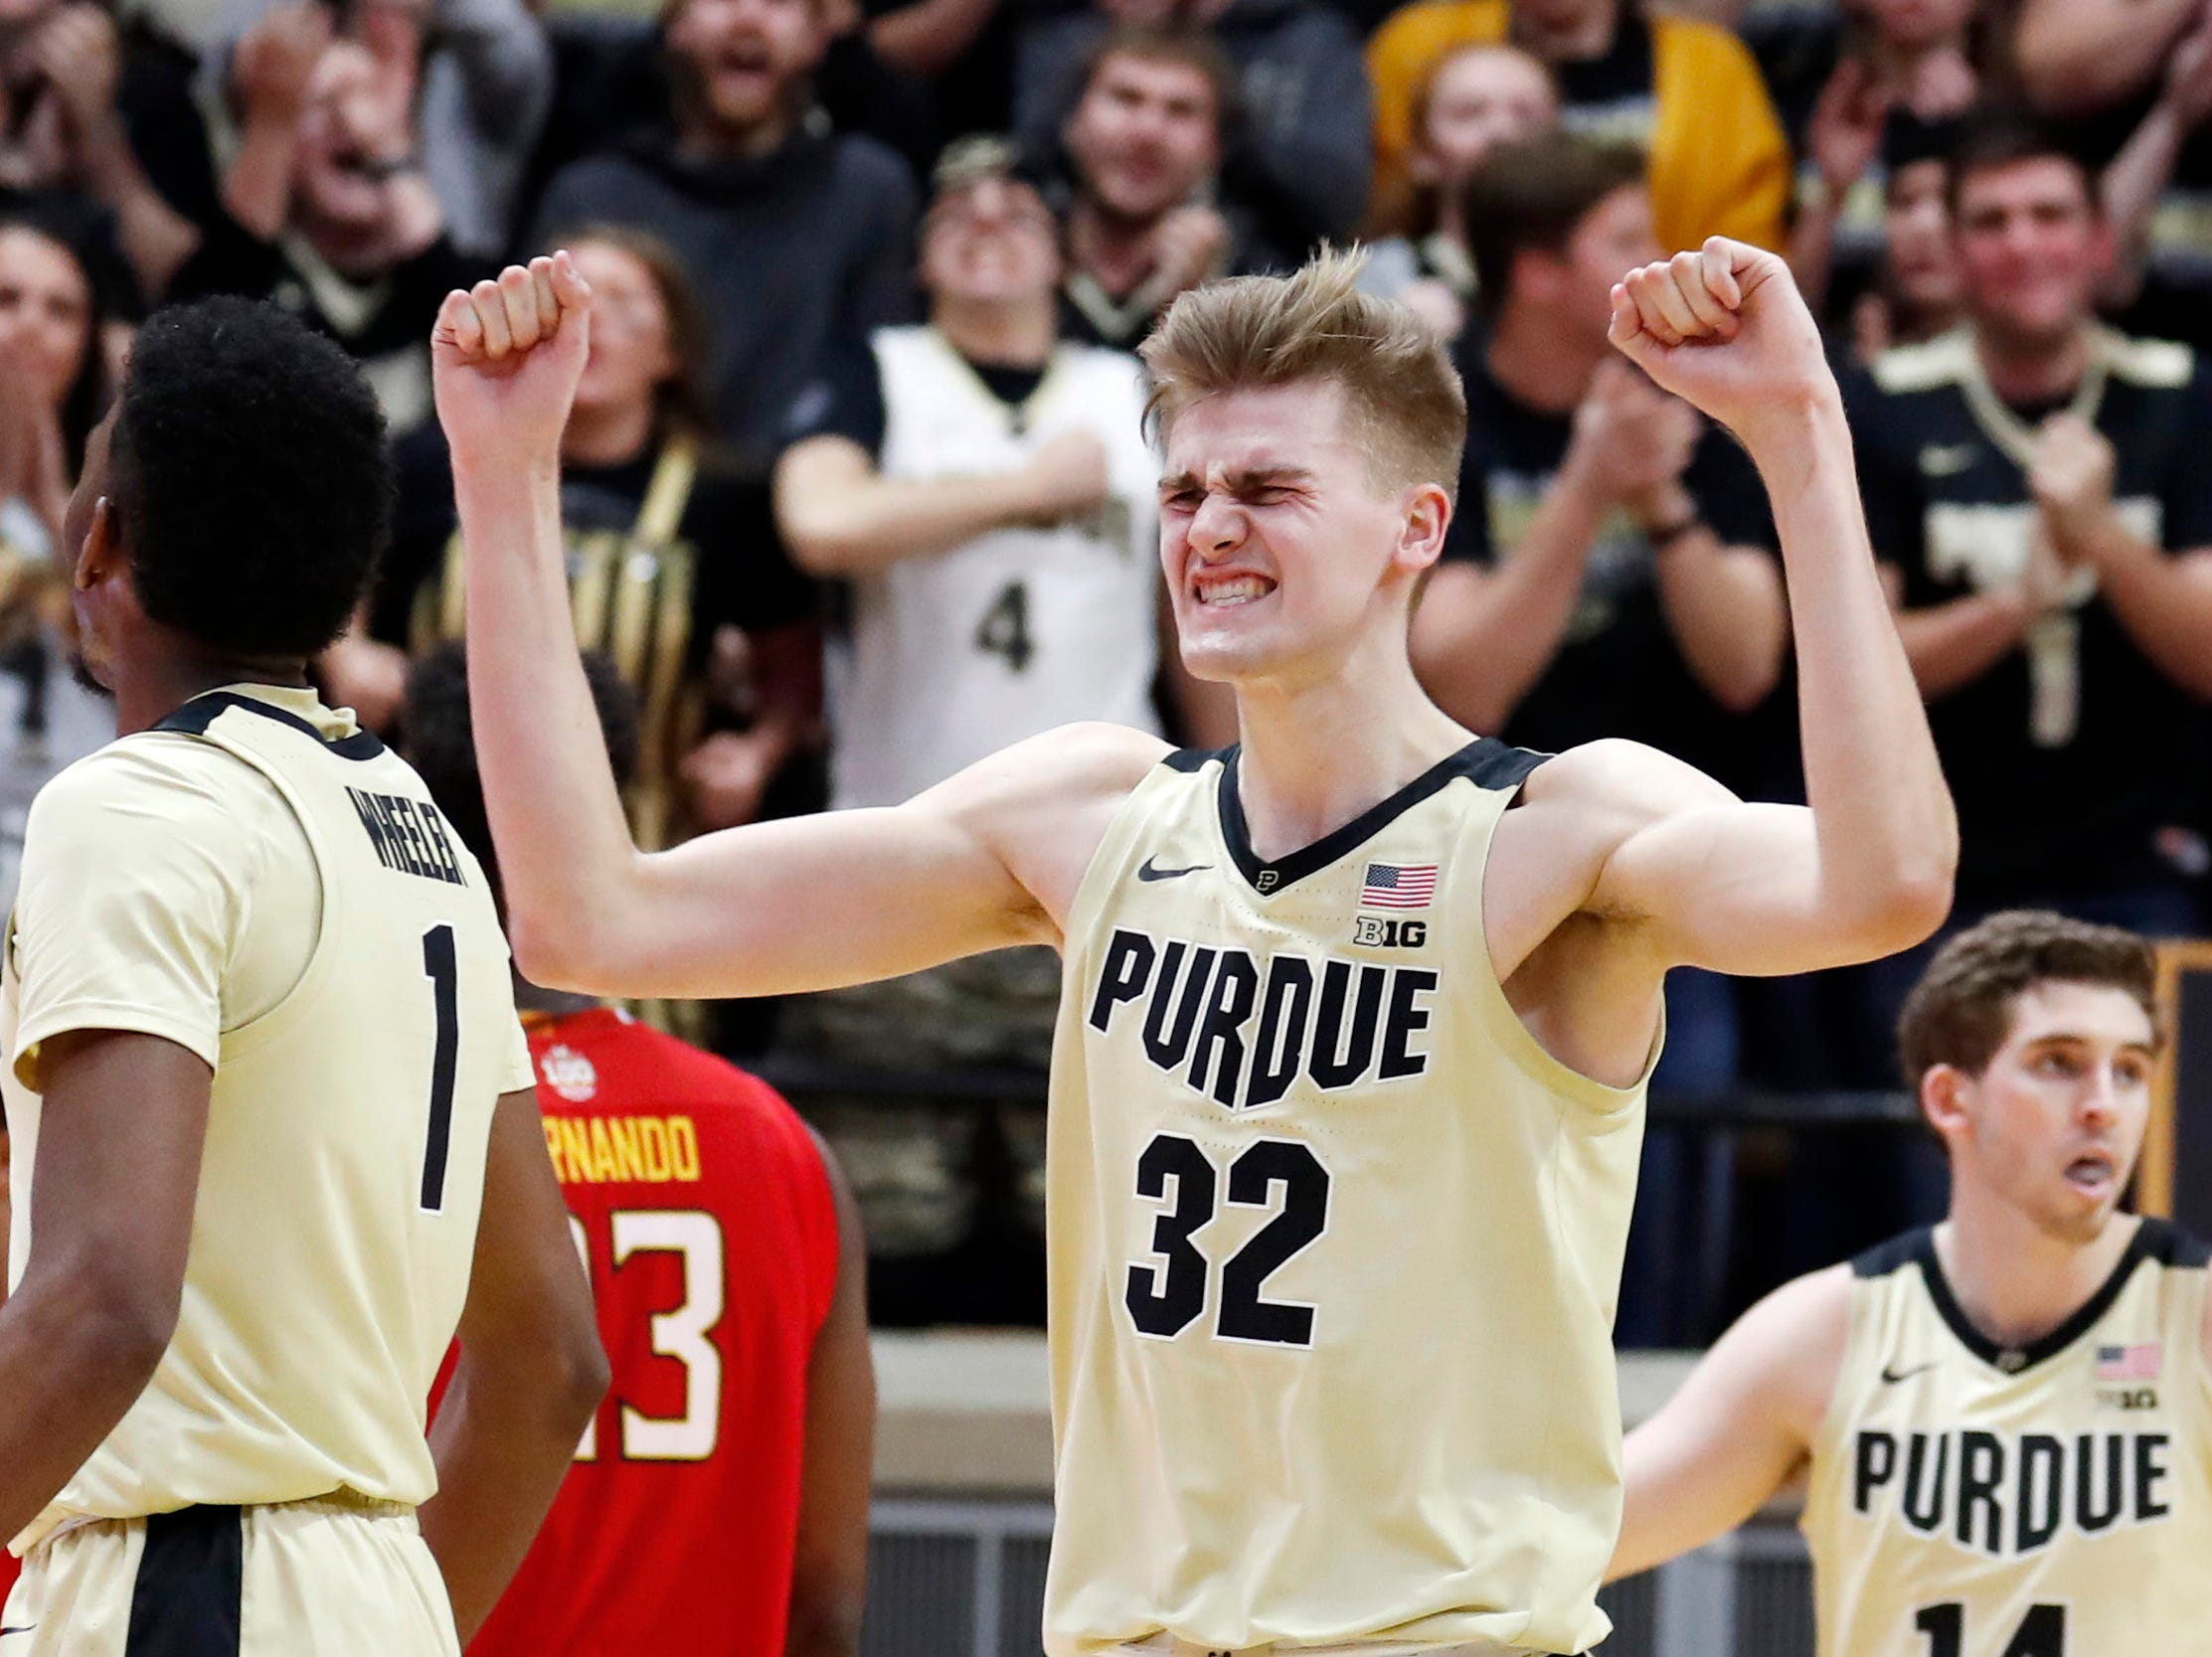 Dec 6, 2018; West Lafayette, IN, USA; Purdue Boilermakers center Matt Haarms (32) reacts to a play against the Maryland Terrapins during the second half at Mackey Arena. Mandatory Credit: Brian Spurlock-USA TODAY Sports